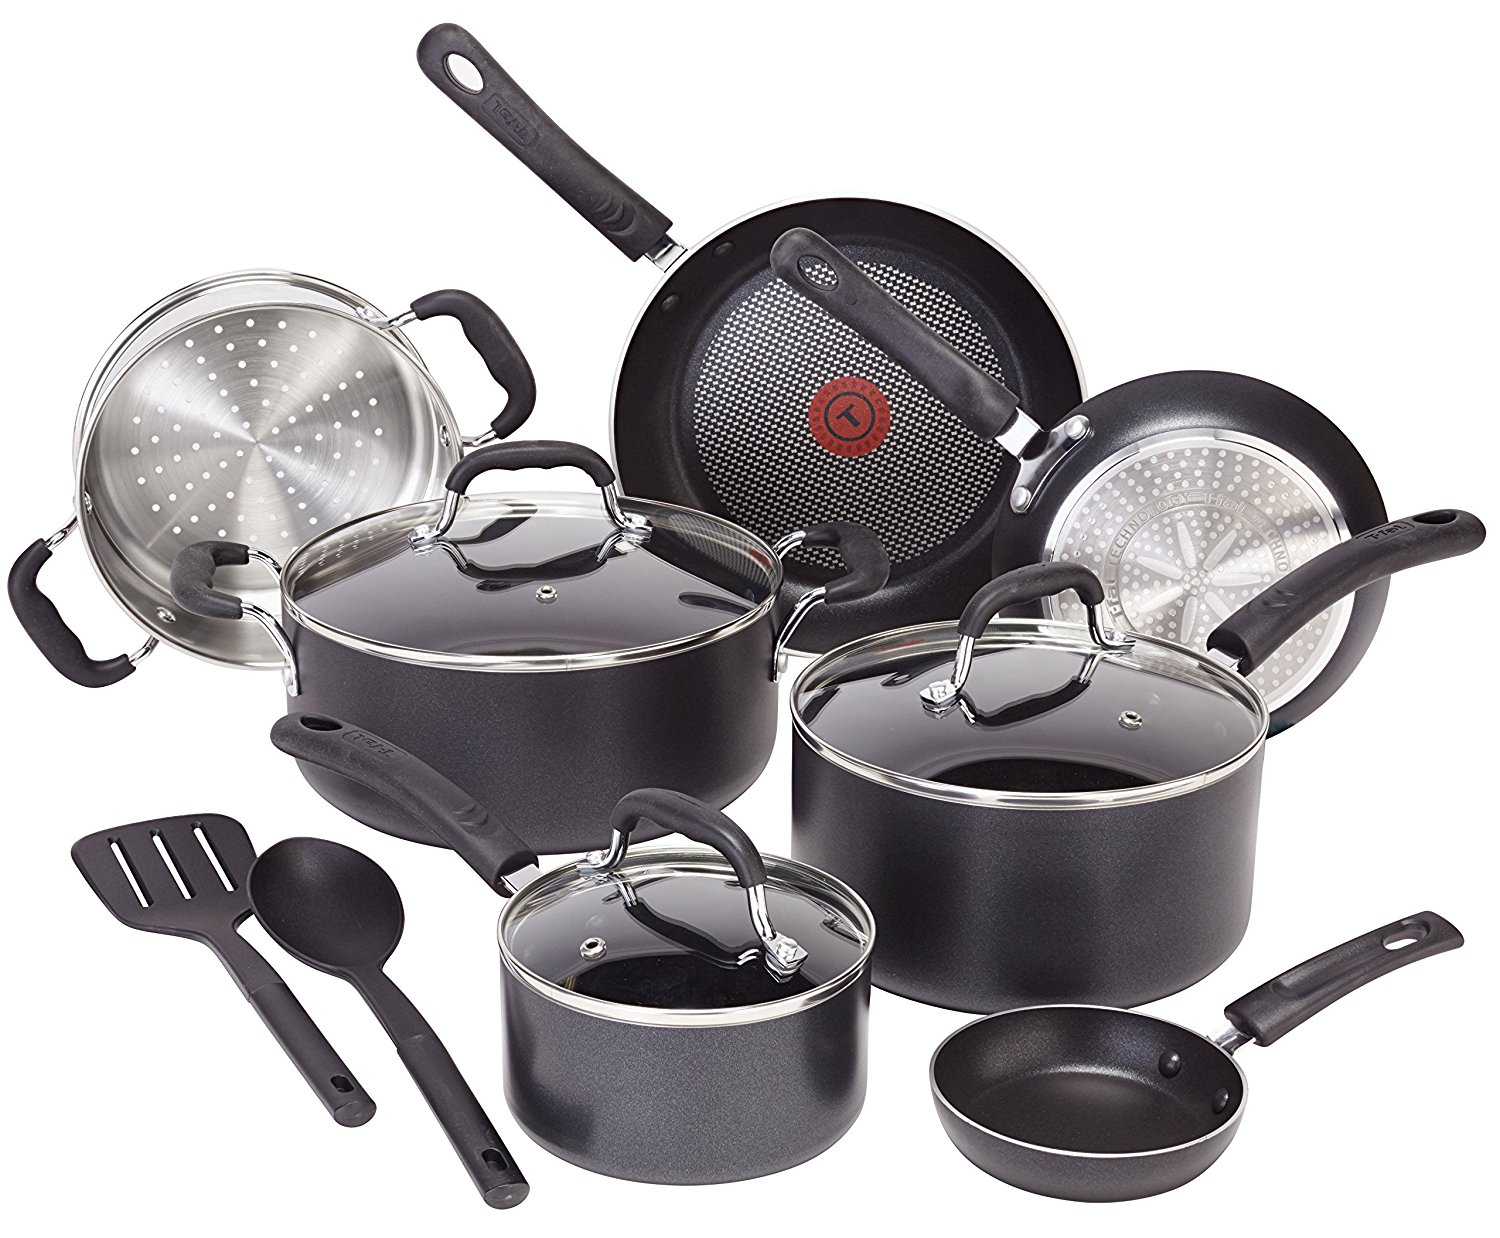 T-fal Professional Total Non-Stick Induction Cookware